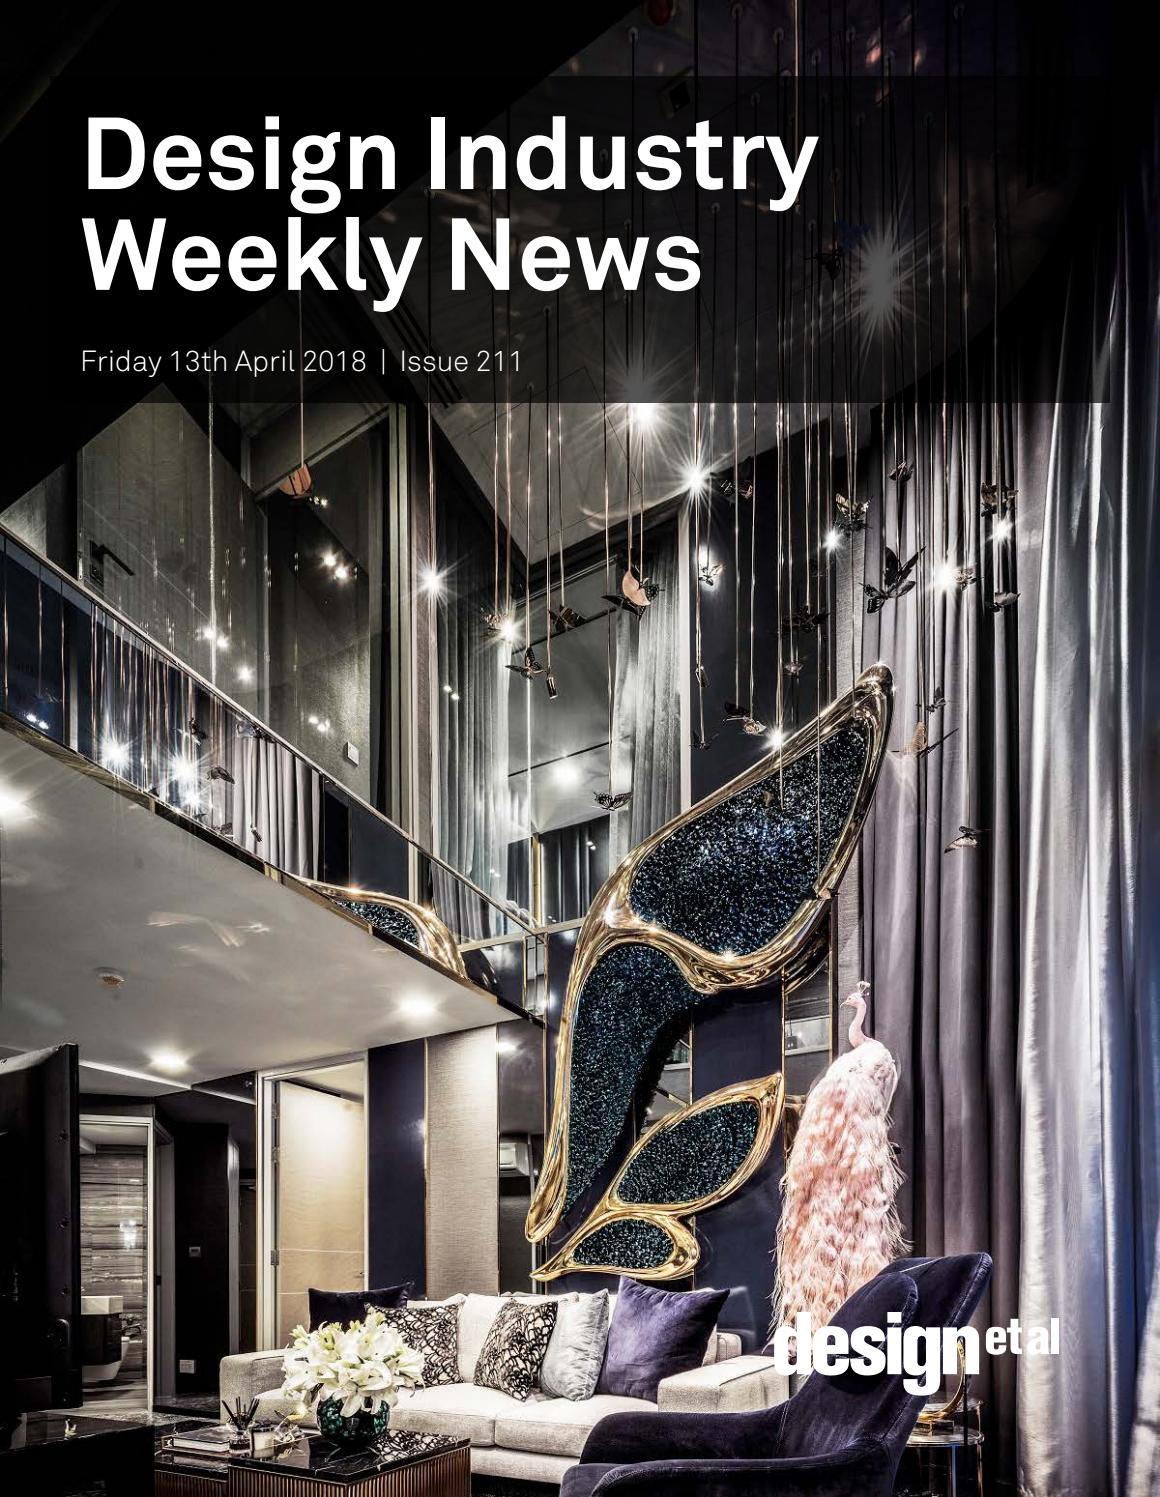 Design Industry Weekly News Issue 211 by design et al - issuu on friday cartoons, friday quotes, friday humor, friday 12th, friday text, friday meme, friday cat,